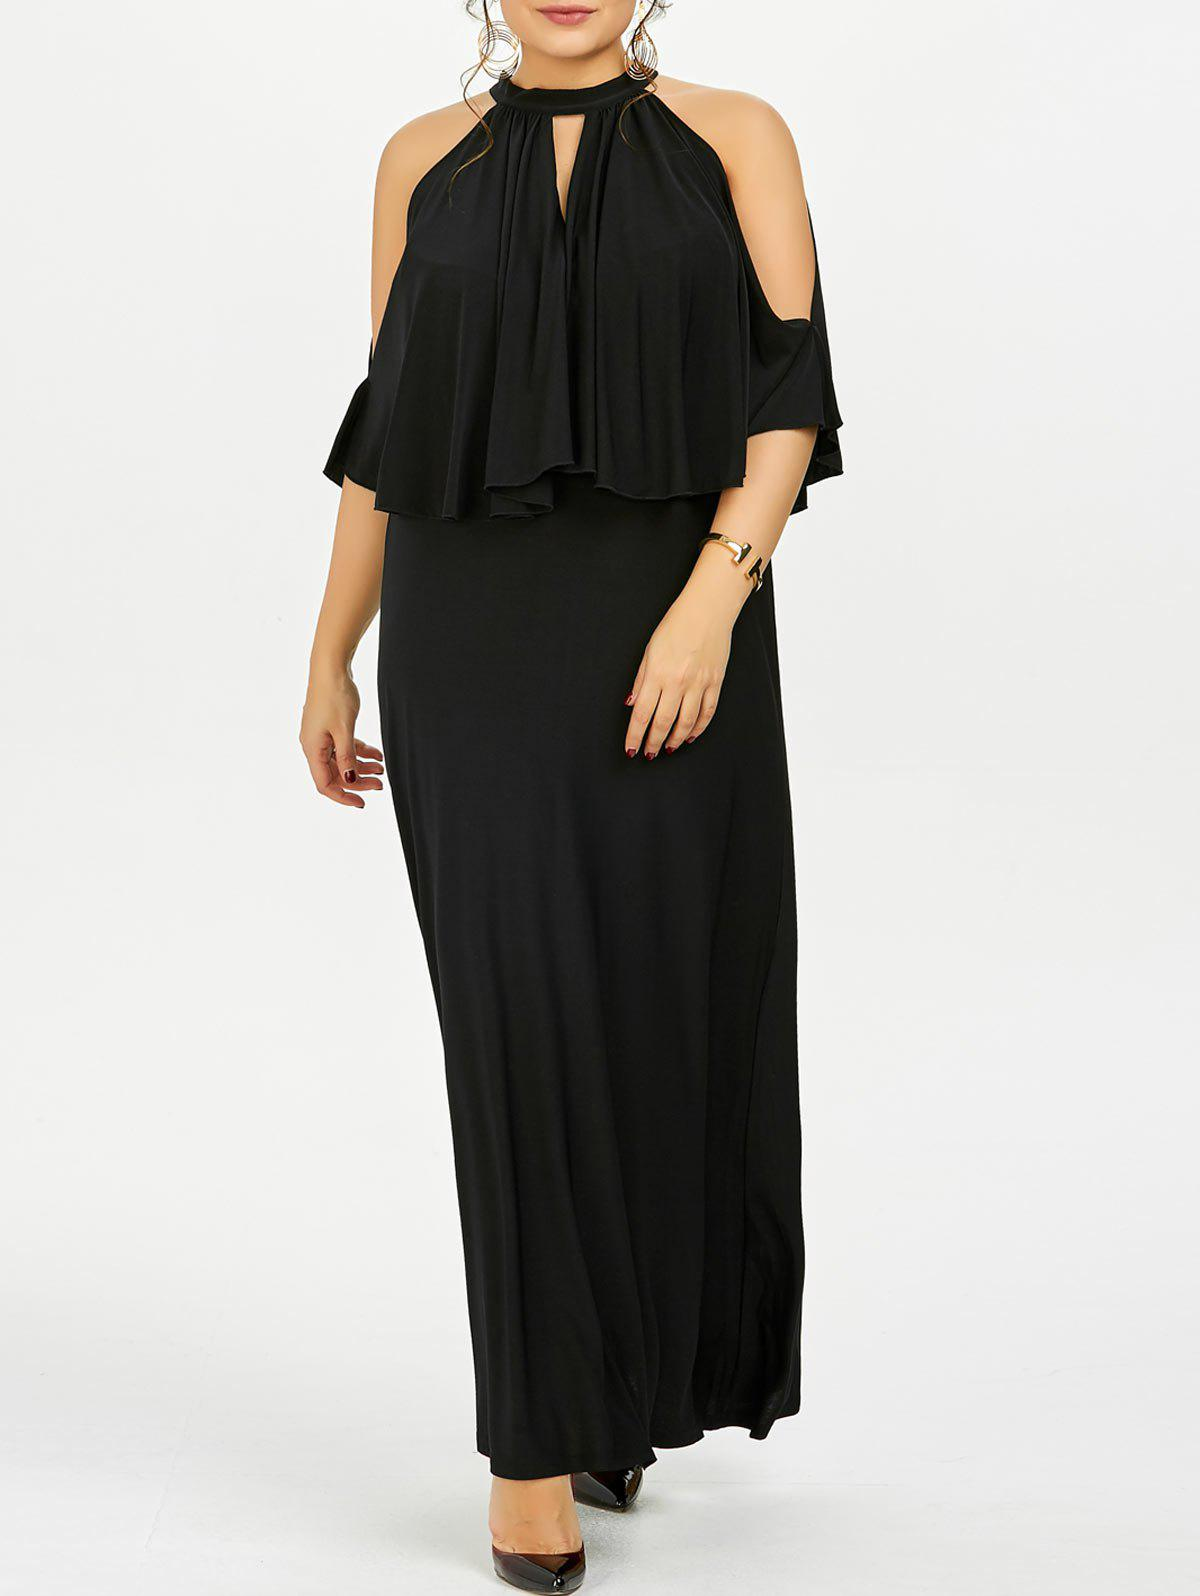 Cold Shoulder Capelet Plus Size Evening DressWOMEN<br><br>Size: 6XL; Color: BLACK; Style: Brief; Material: Cotton,Cotton Blend,Polyester; Silhouette: Ball Gown; Dresses Length: Floor-Length; Neckline: High Neck; Sleeve Type: Cold Shoulder; Sleeve Length: Short Sleeves; Waist: High Waisted; Embellishment: Hollow Out,Ruffles; Pattern Type: Solid Color; Elasticity: Elastic; With Belt: No; Season: Spring,Summer; Weight: 0.3700kg; Package Contents: 1 x Dress;